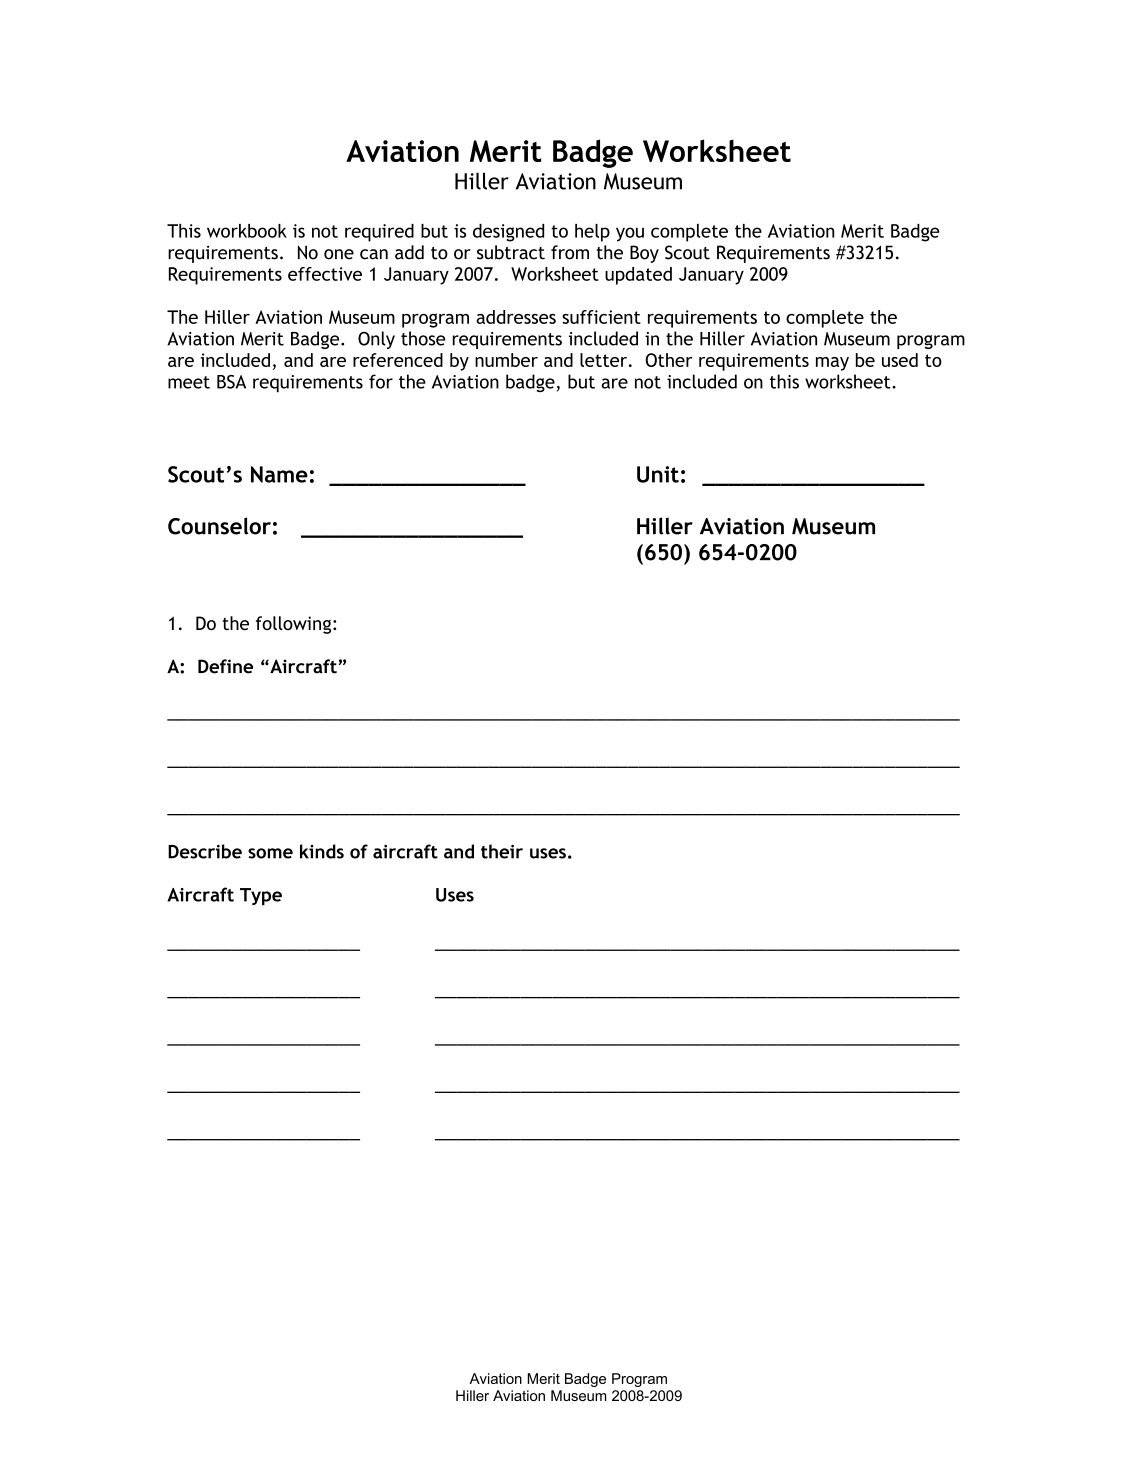 worksheet. Camping Merit Badge Worksheet Answers. Grass Fedjp ...